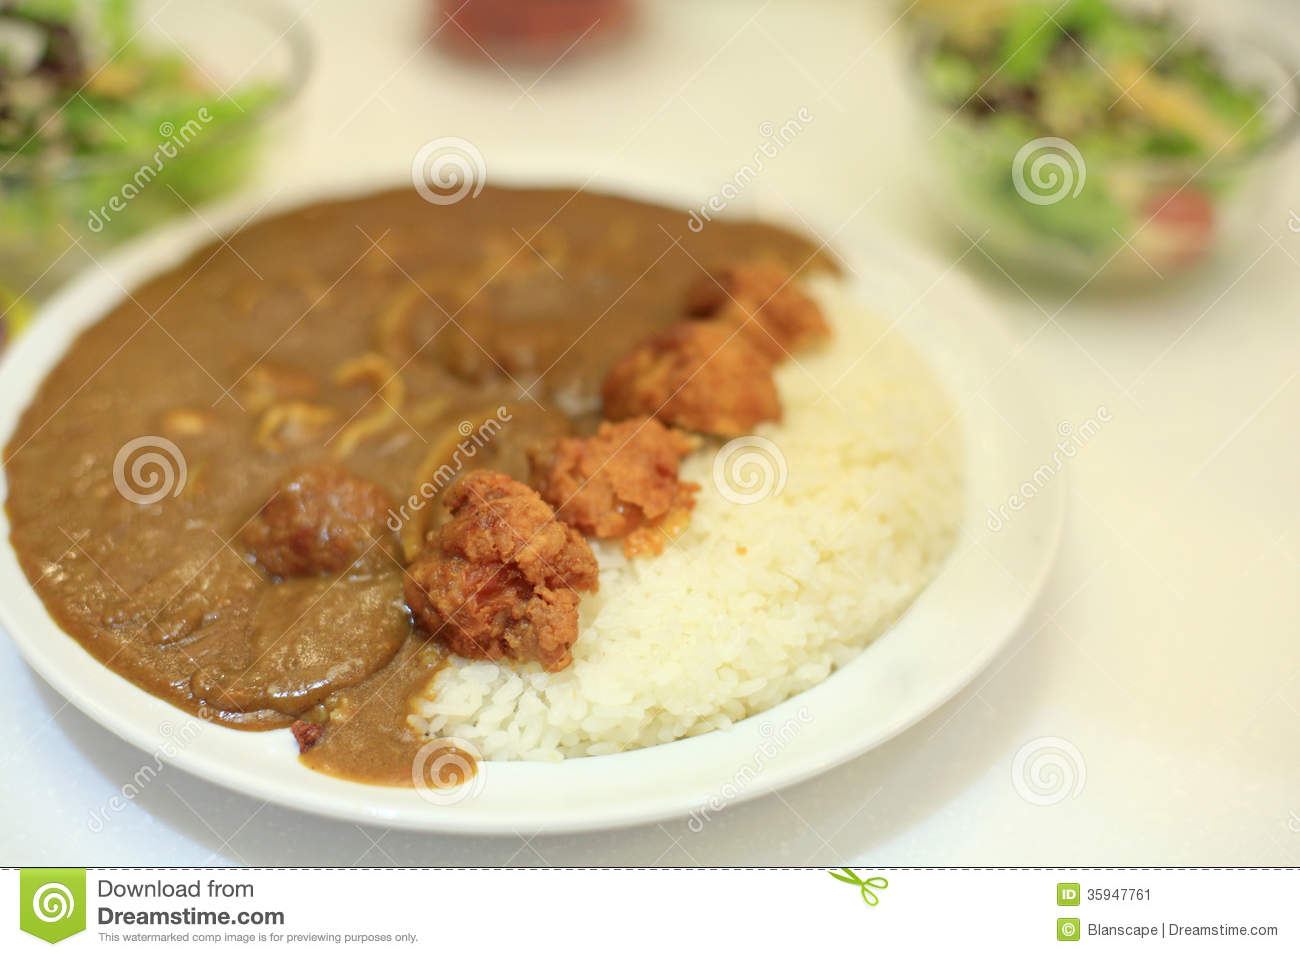 Japanese Chicken Curry With Stream Rice Stock Image - Image: 35947761